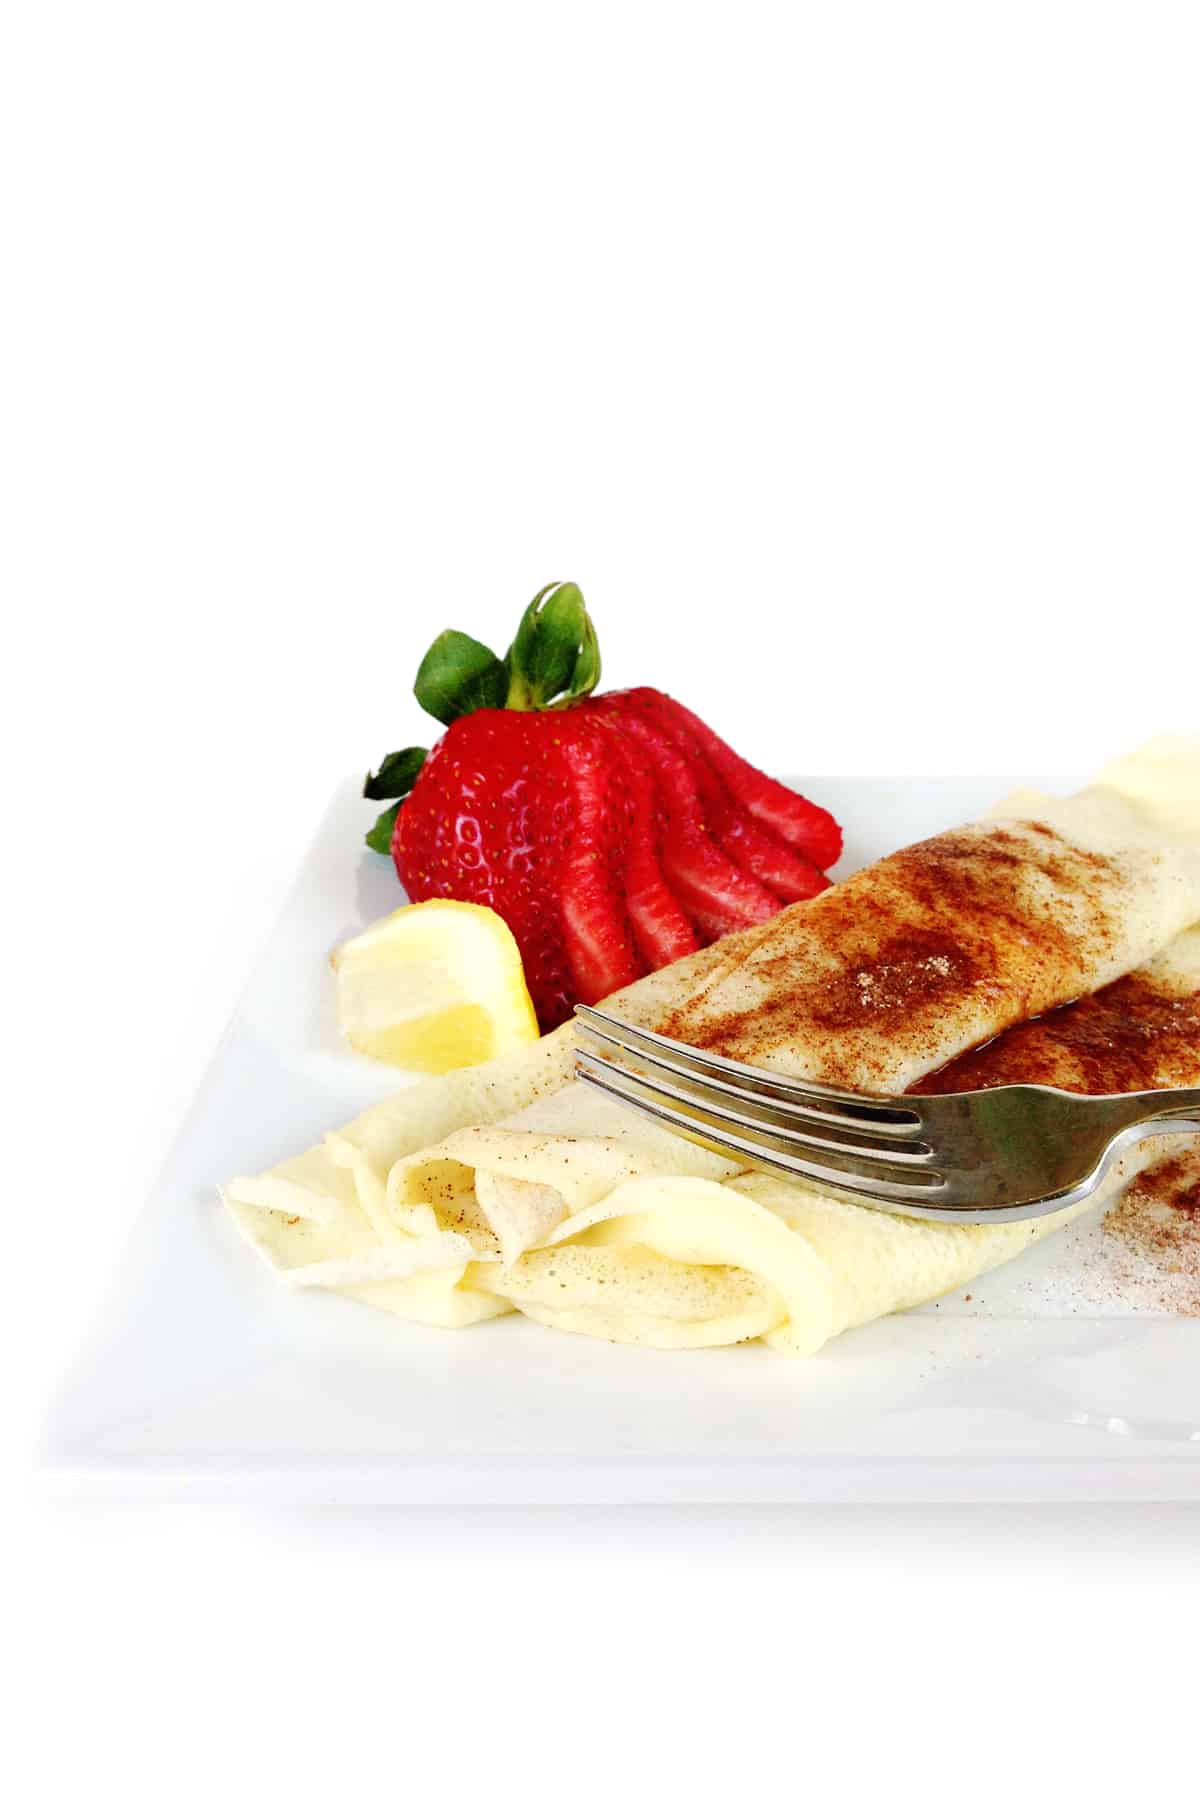 south african pannekoek on a white plate with a lemon wedge and a sliced strawberry